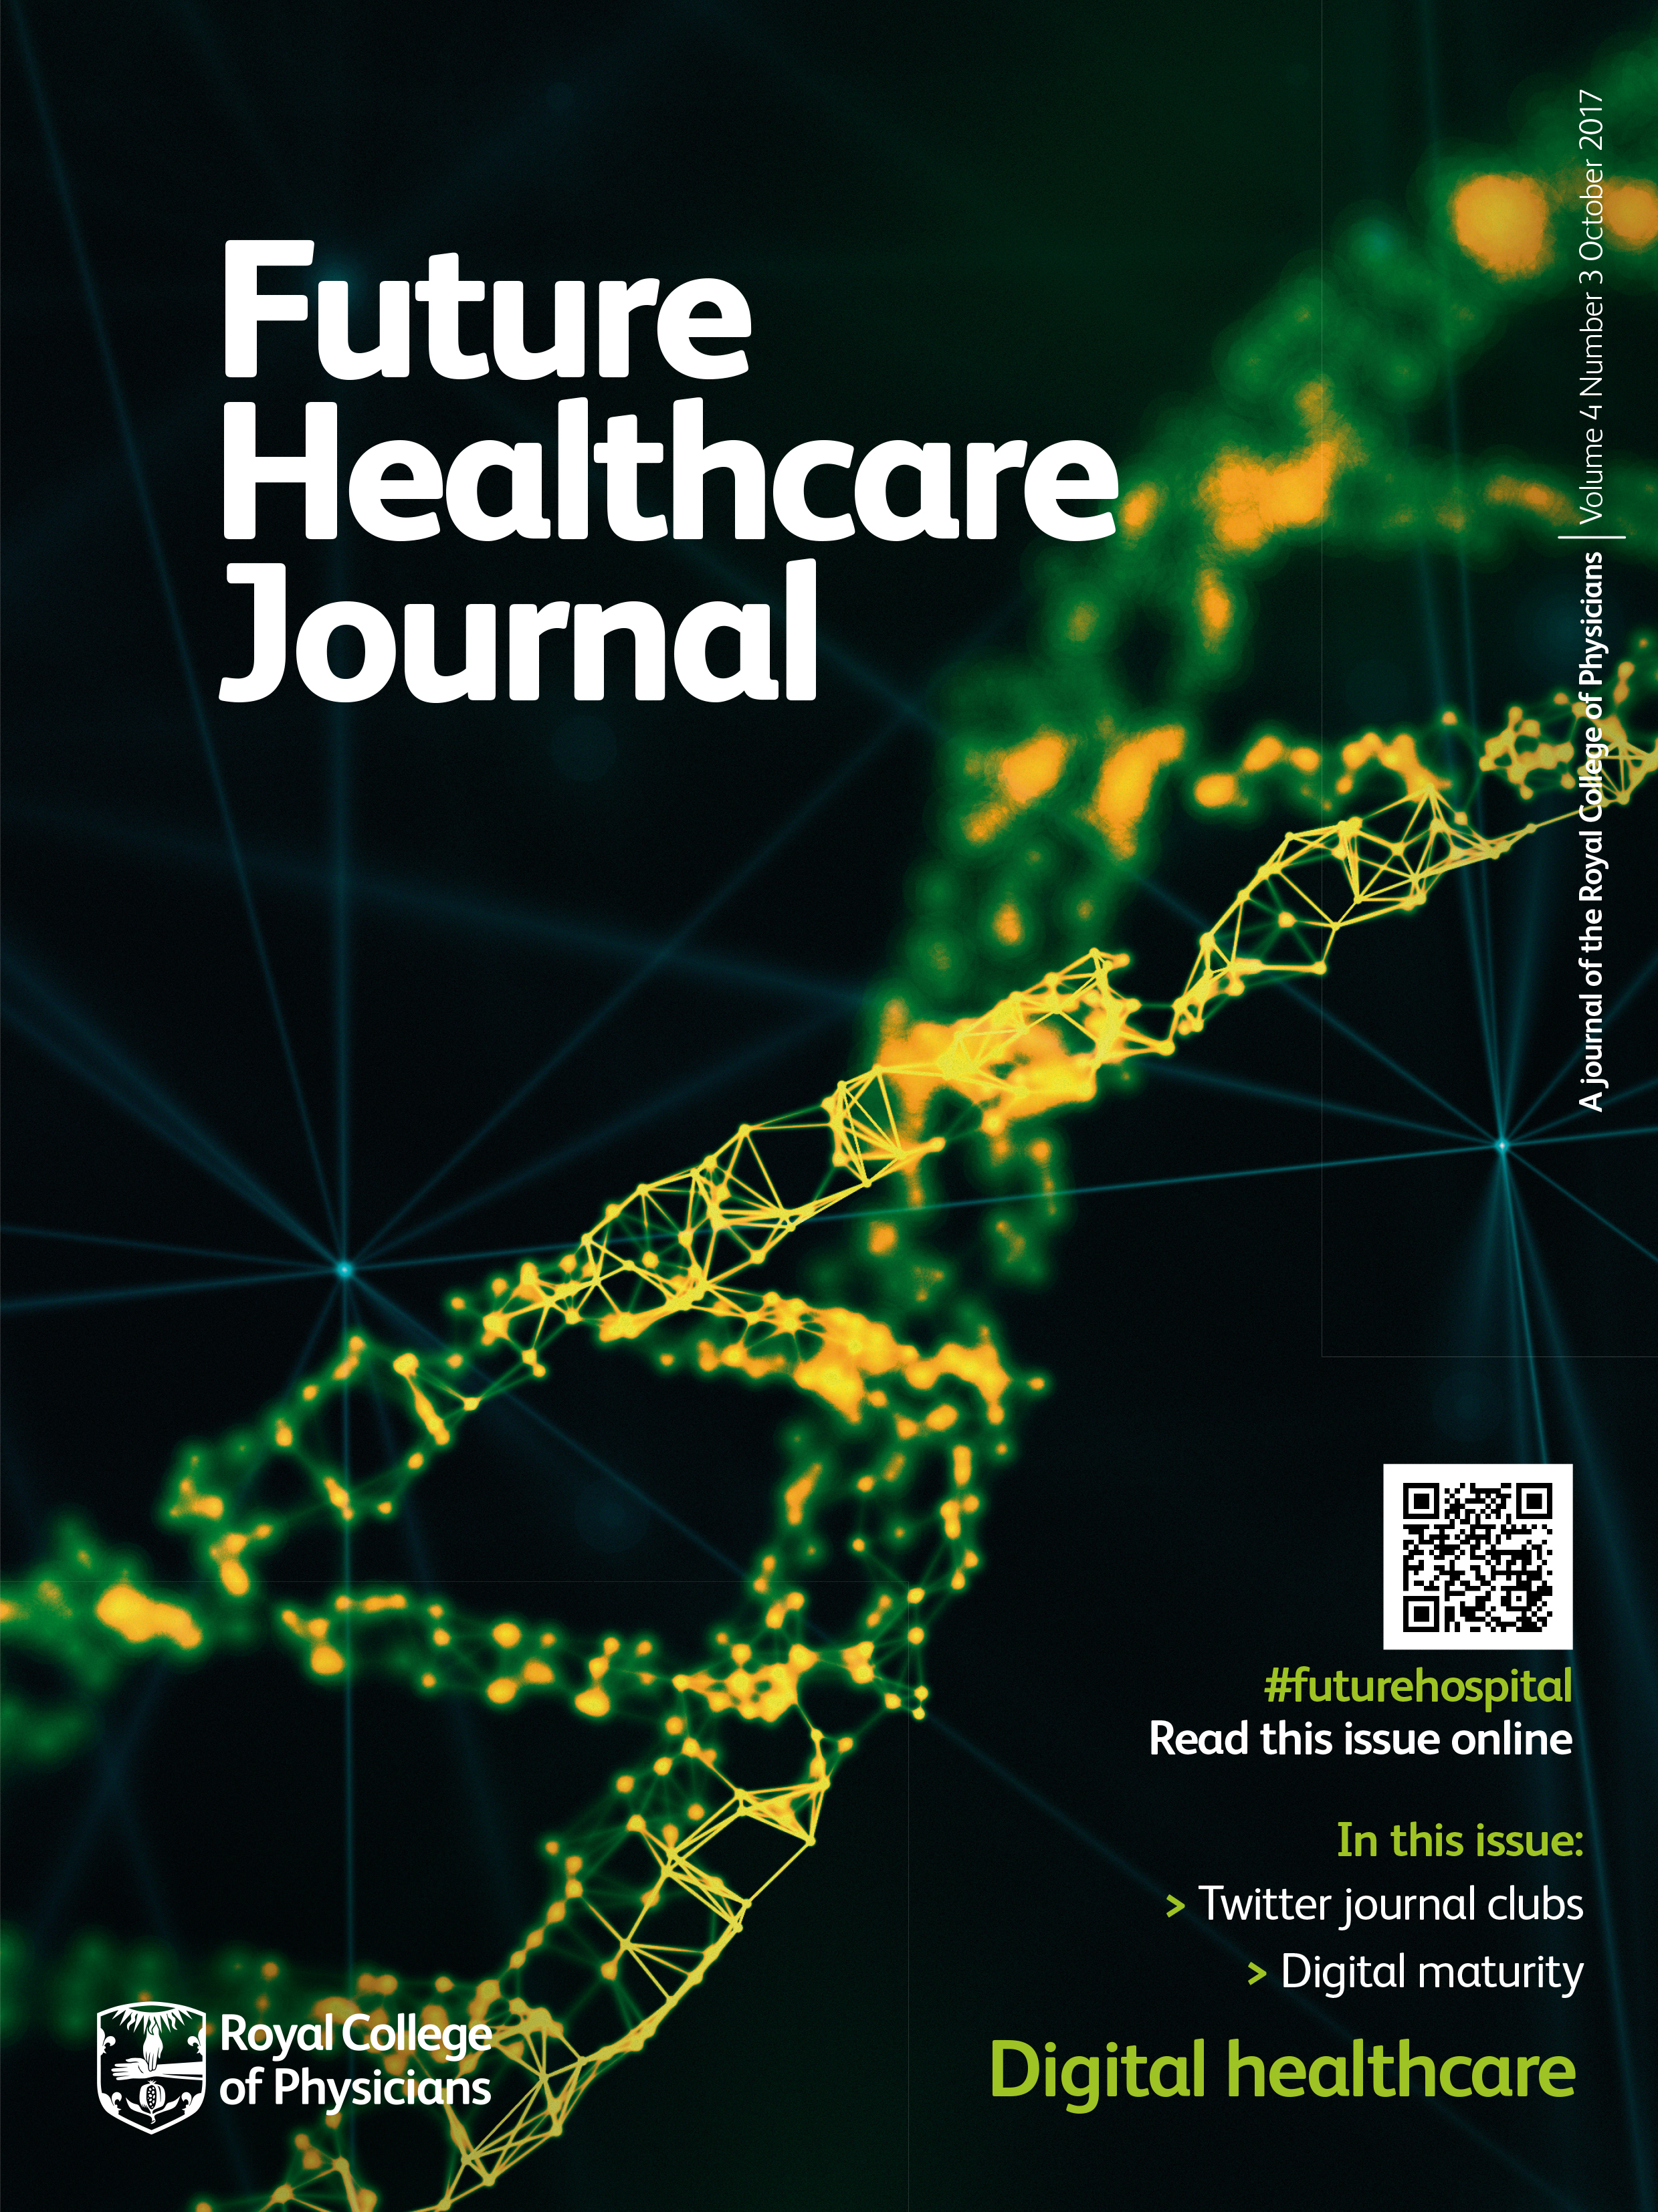 Future Healthcare Journal front cover